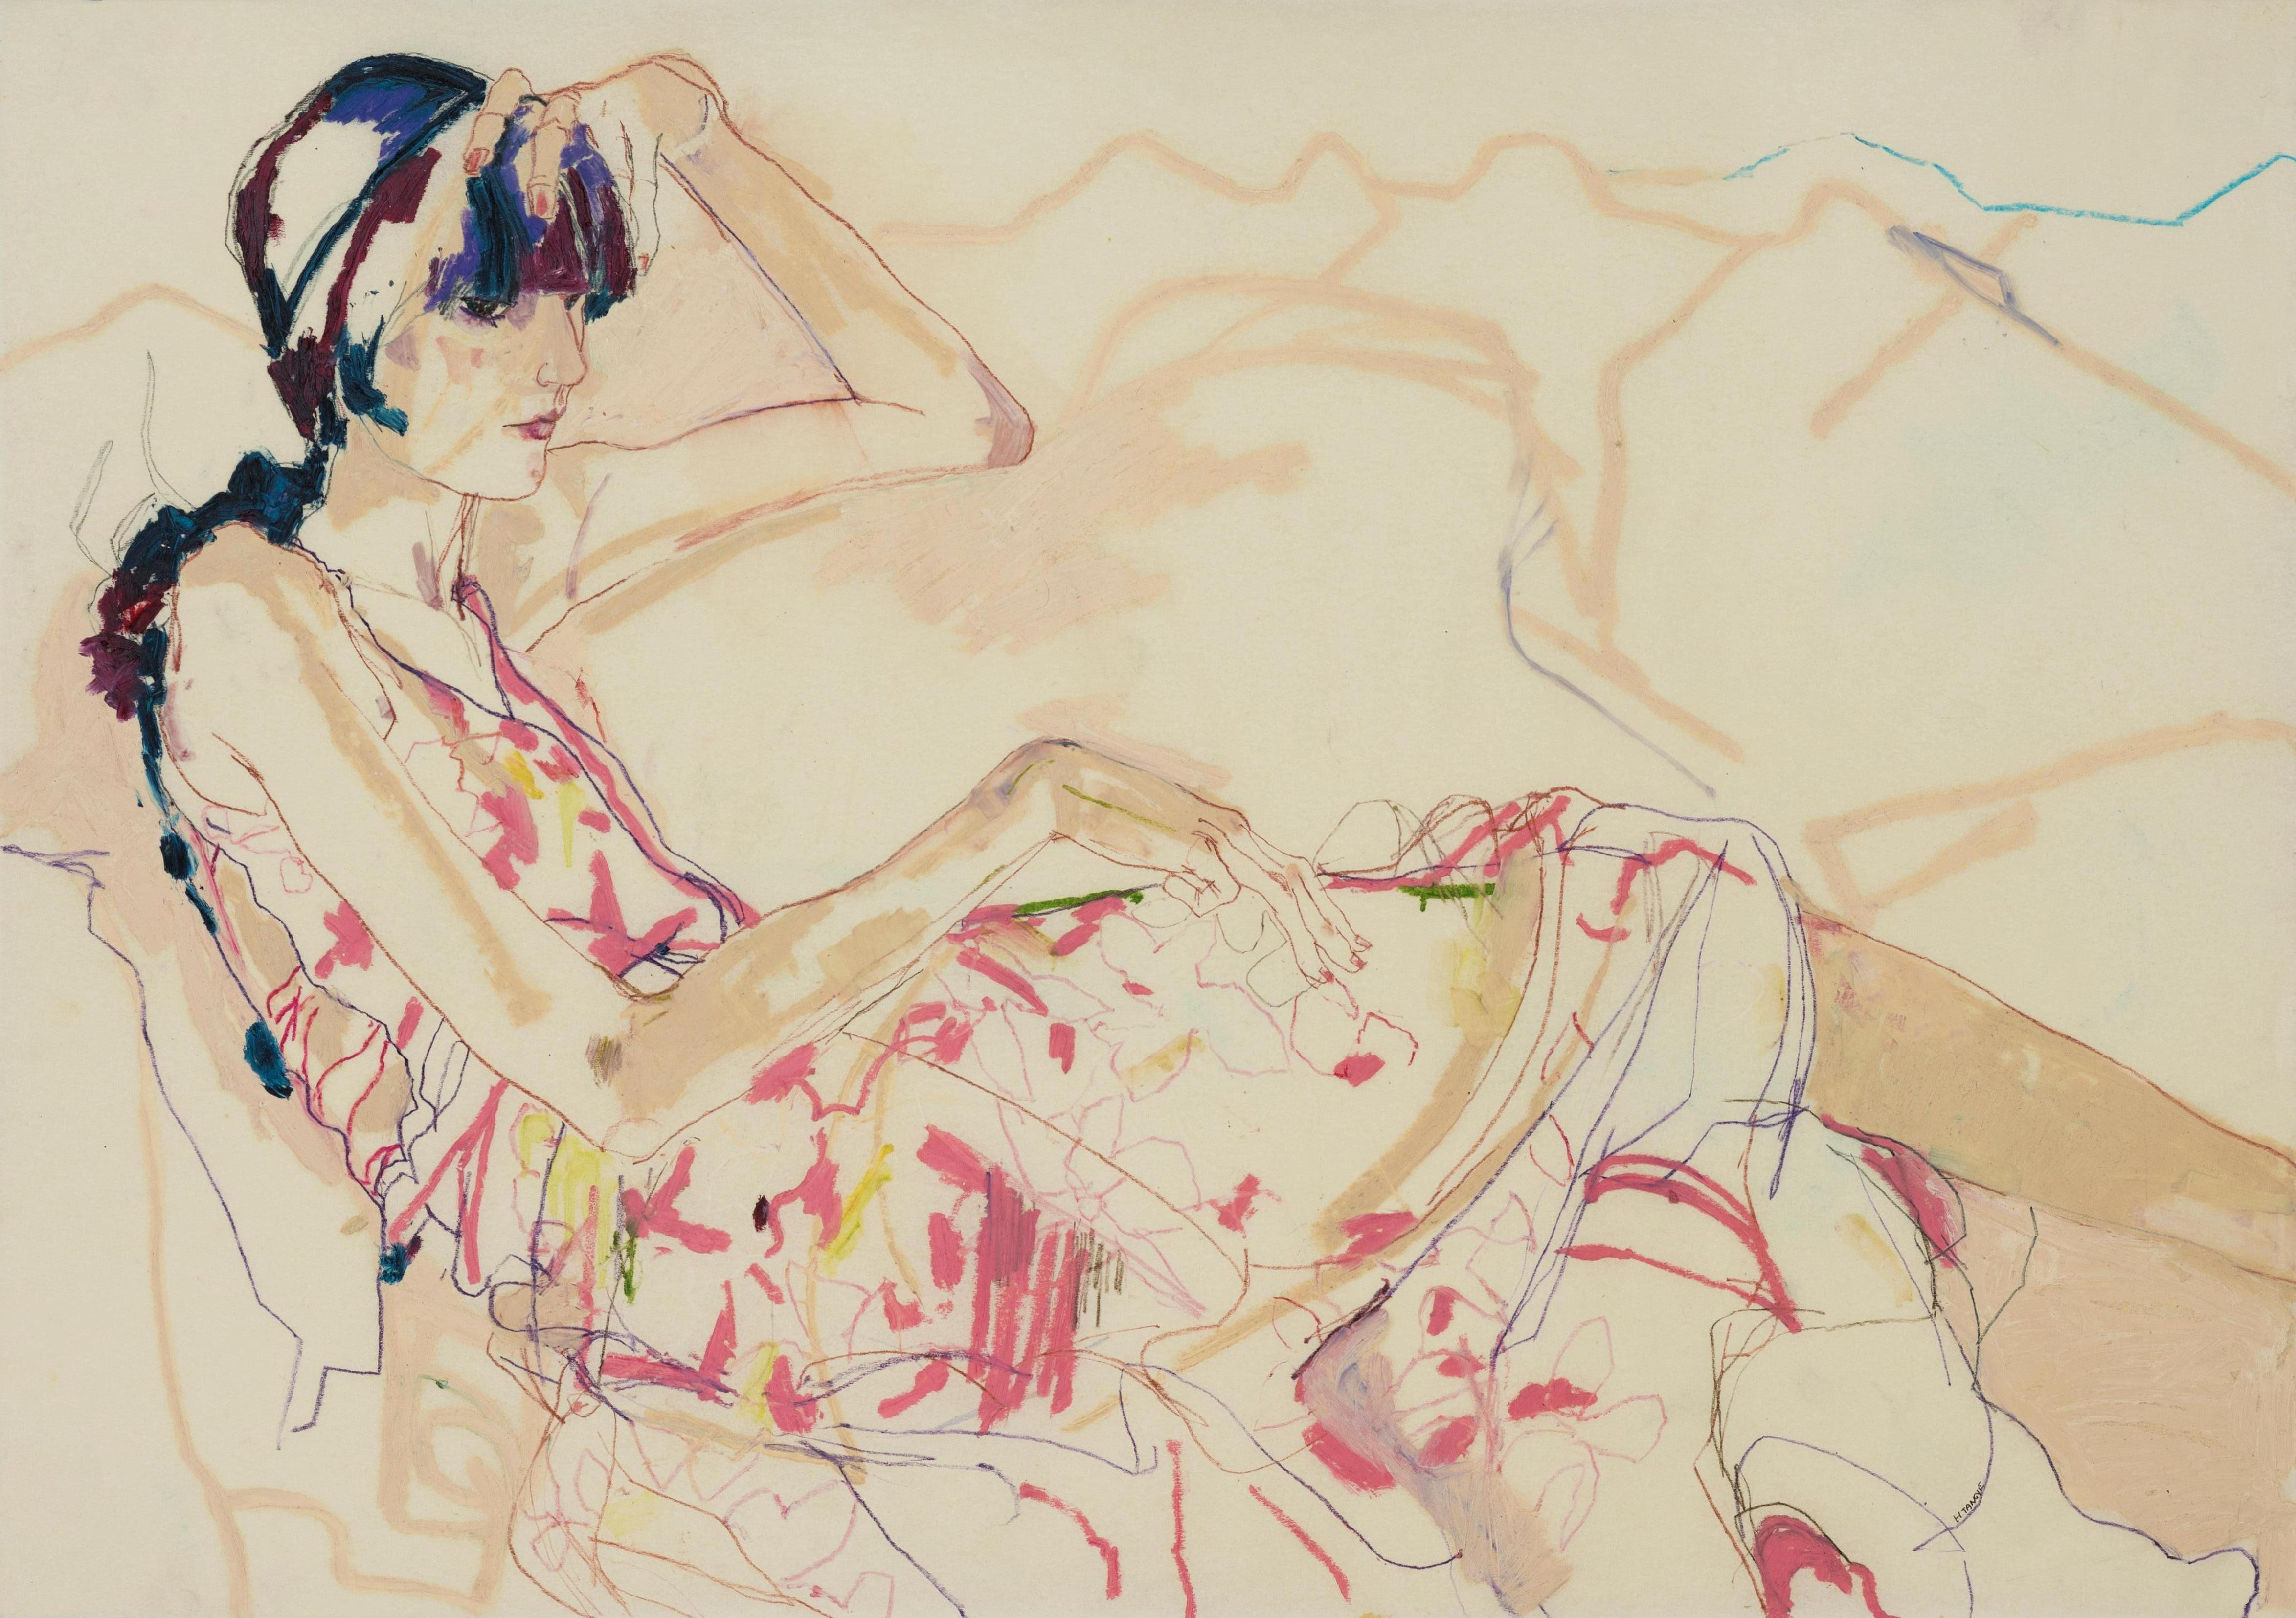 Emilie (Sitting, Legs Out - Pinks), Mixed media on Pergamenata parchment